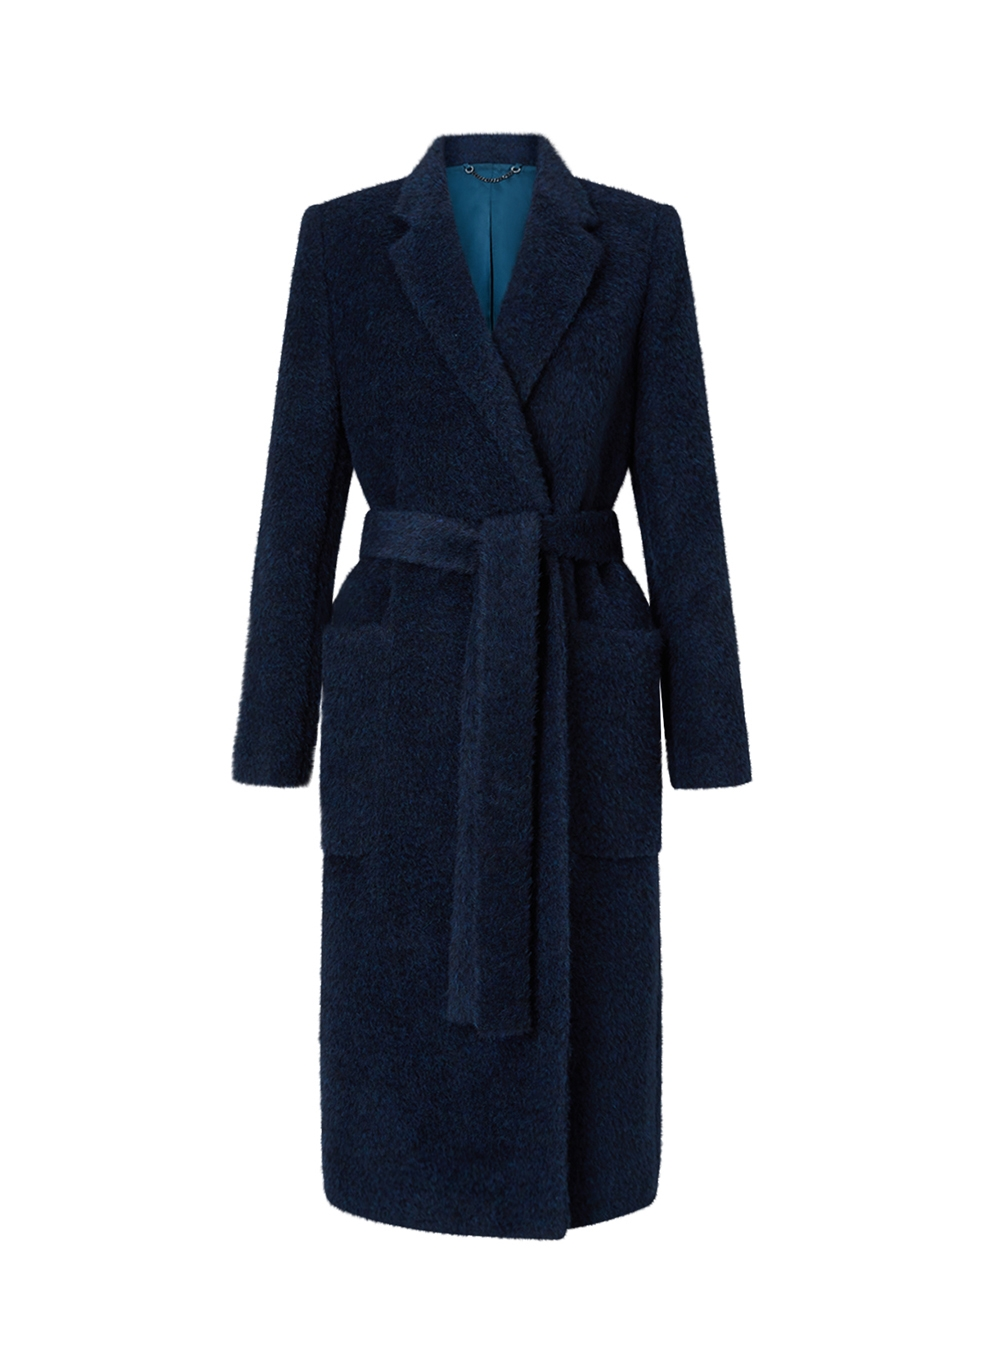 JIGSAW Luxe Narrow Belted Coat